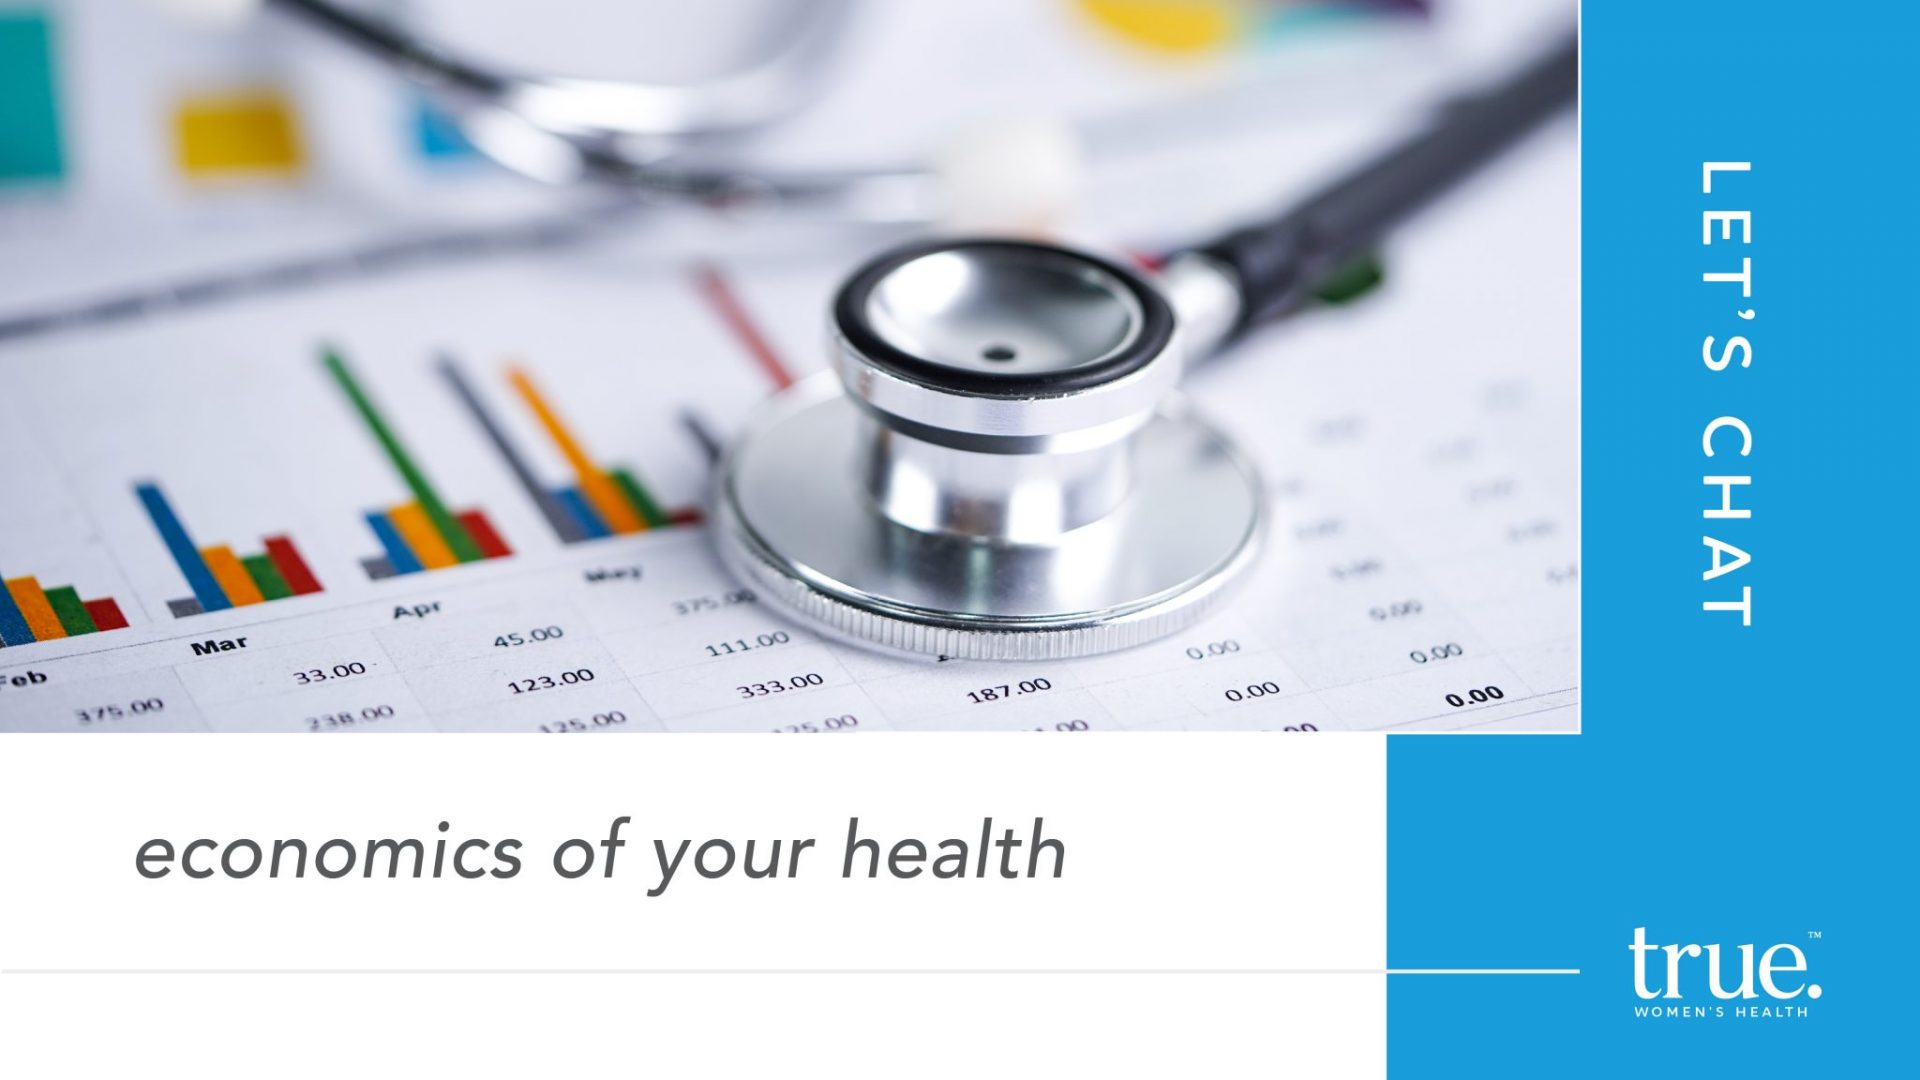 Lets chat about the economics of your health